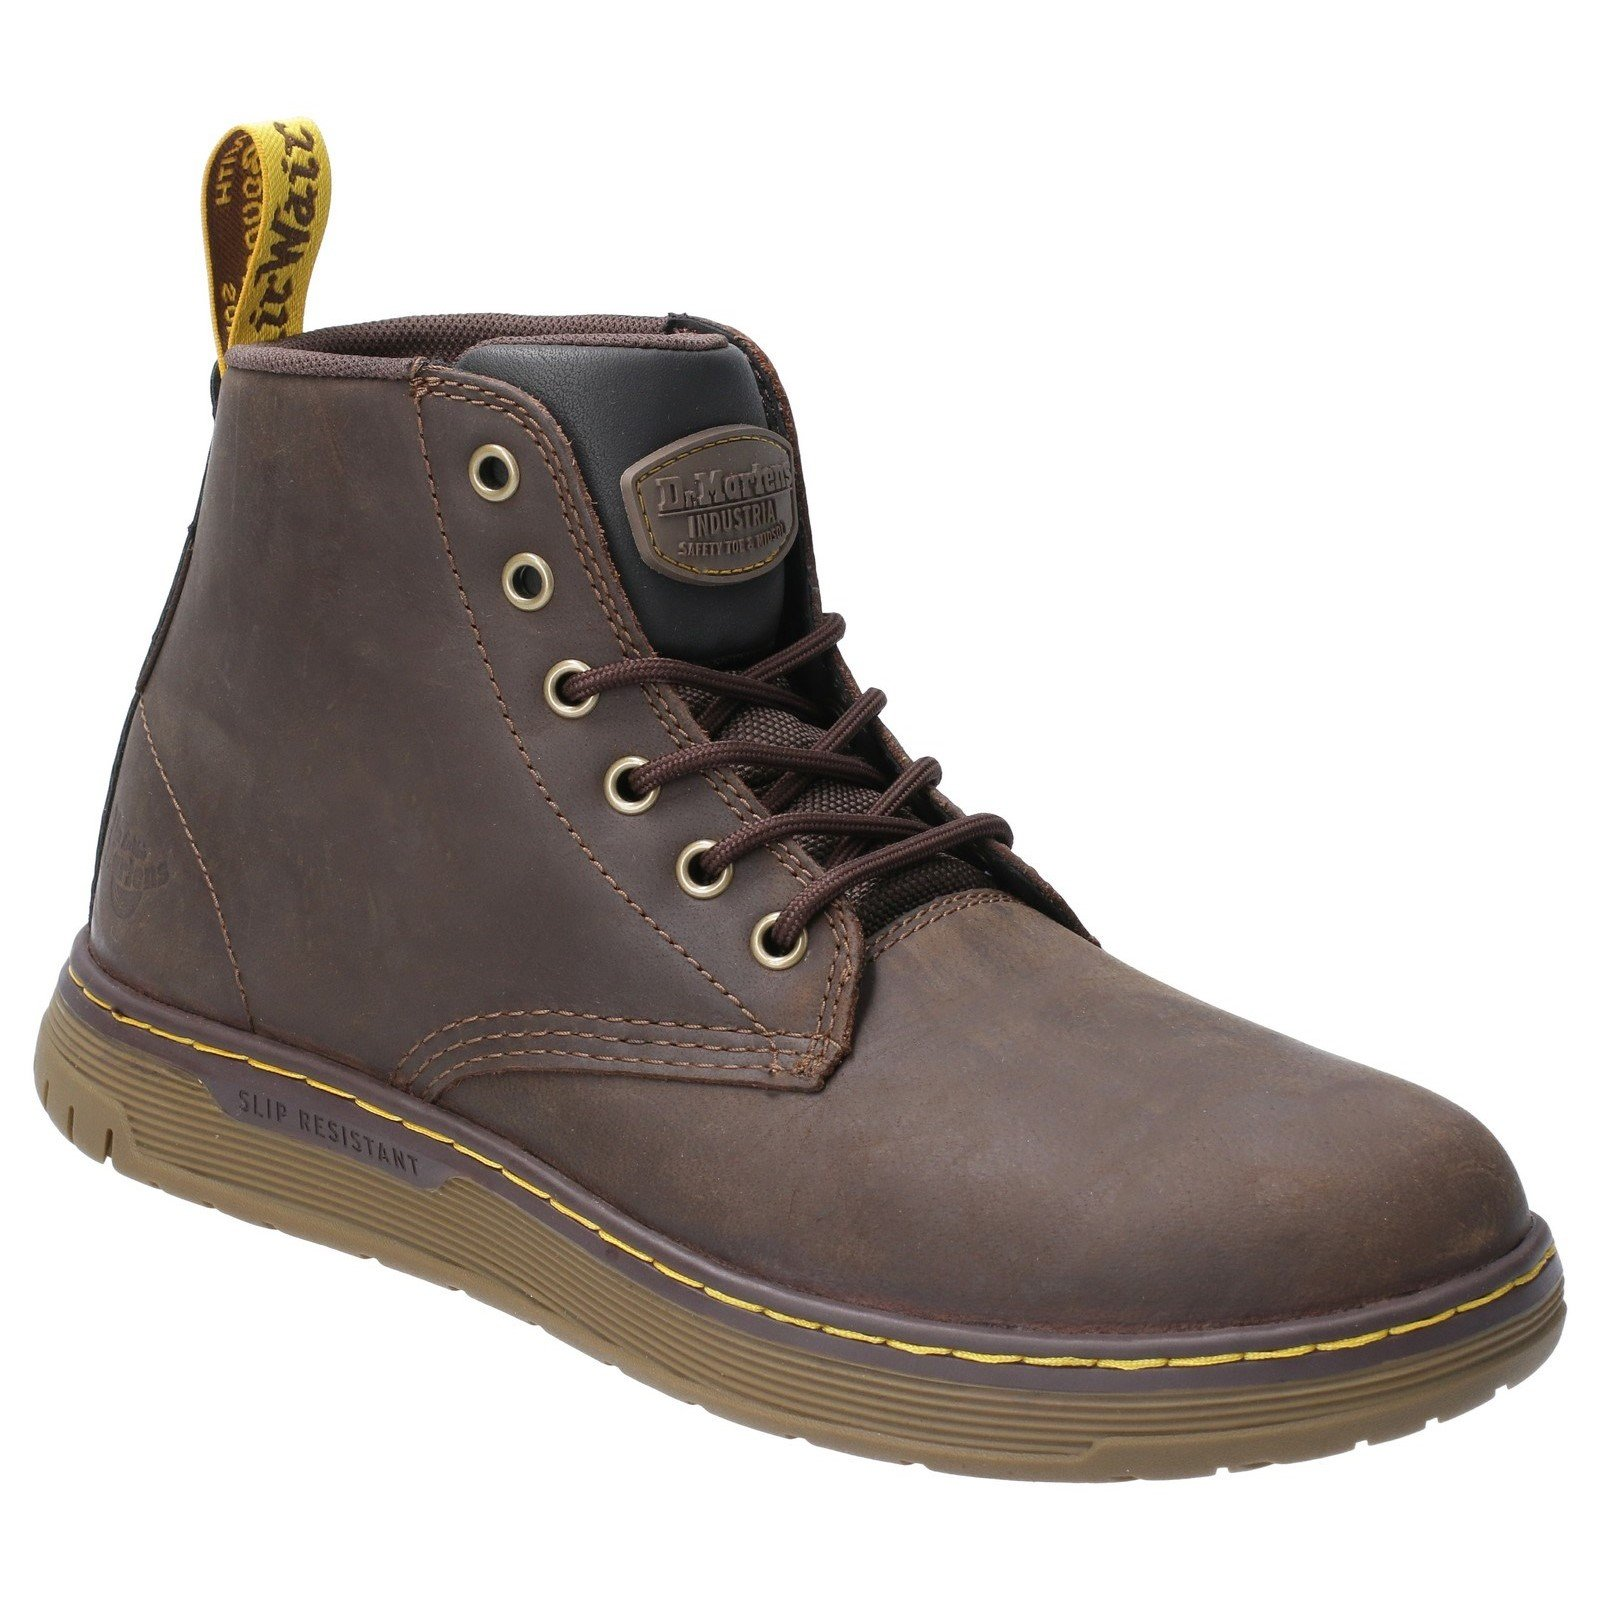 Dr Martens Unisex Ledger Lace Up Safety Boot Brown 29501 - Brown 6